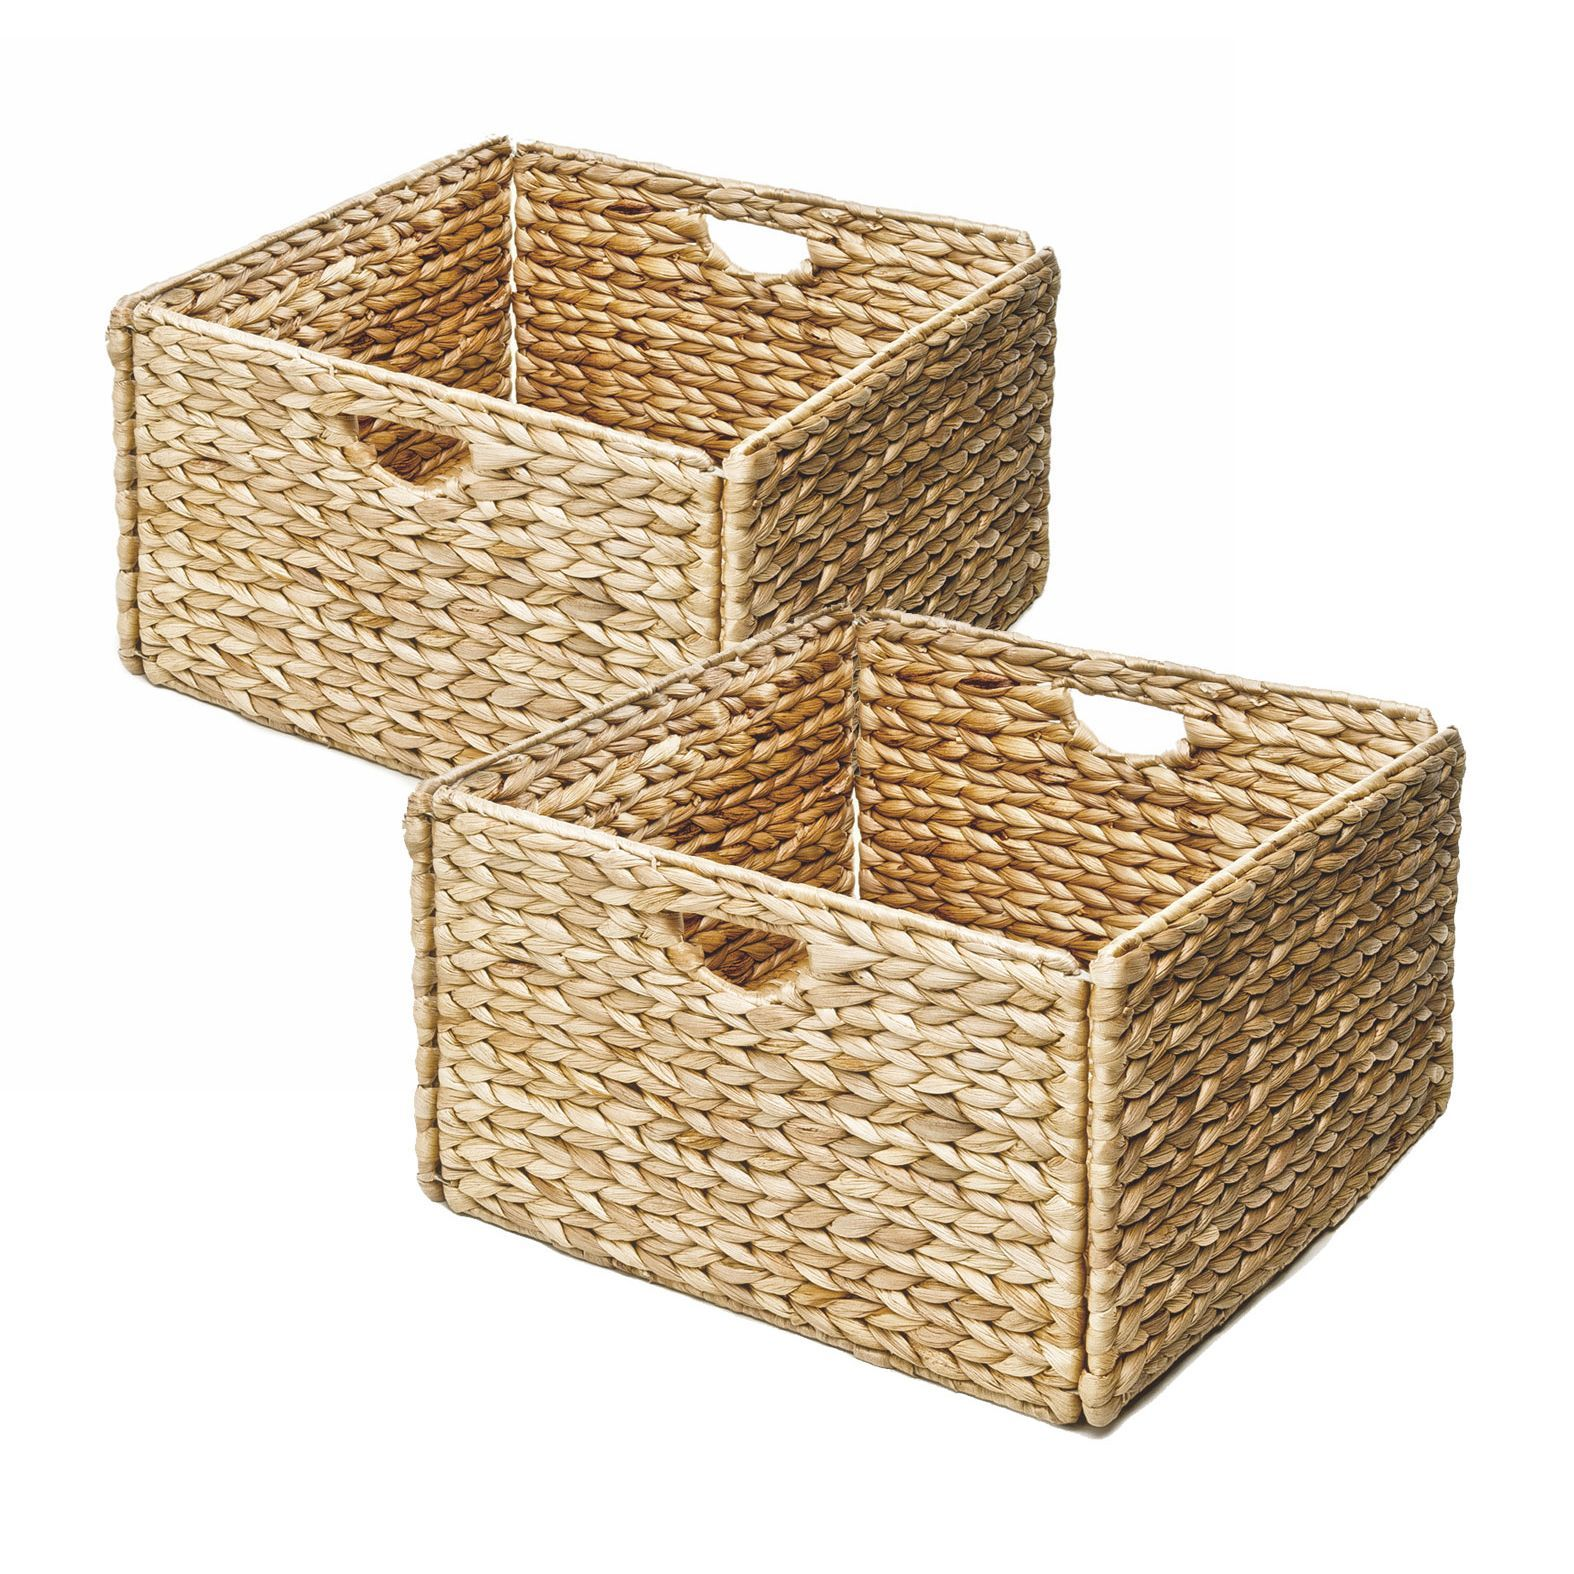 Home underbed storage baskets wicker underbed storage basket - Seville Classics Woven Hyacinth Storage Cube Basket Set Of 2 By Seville Classics